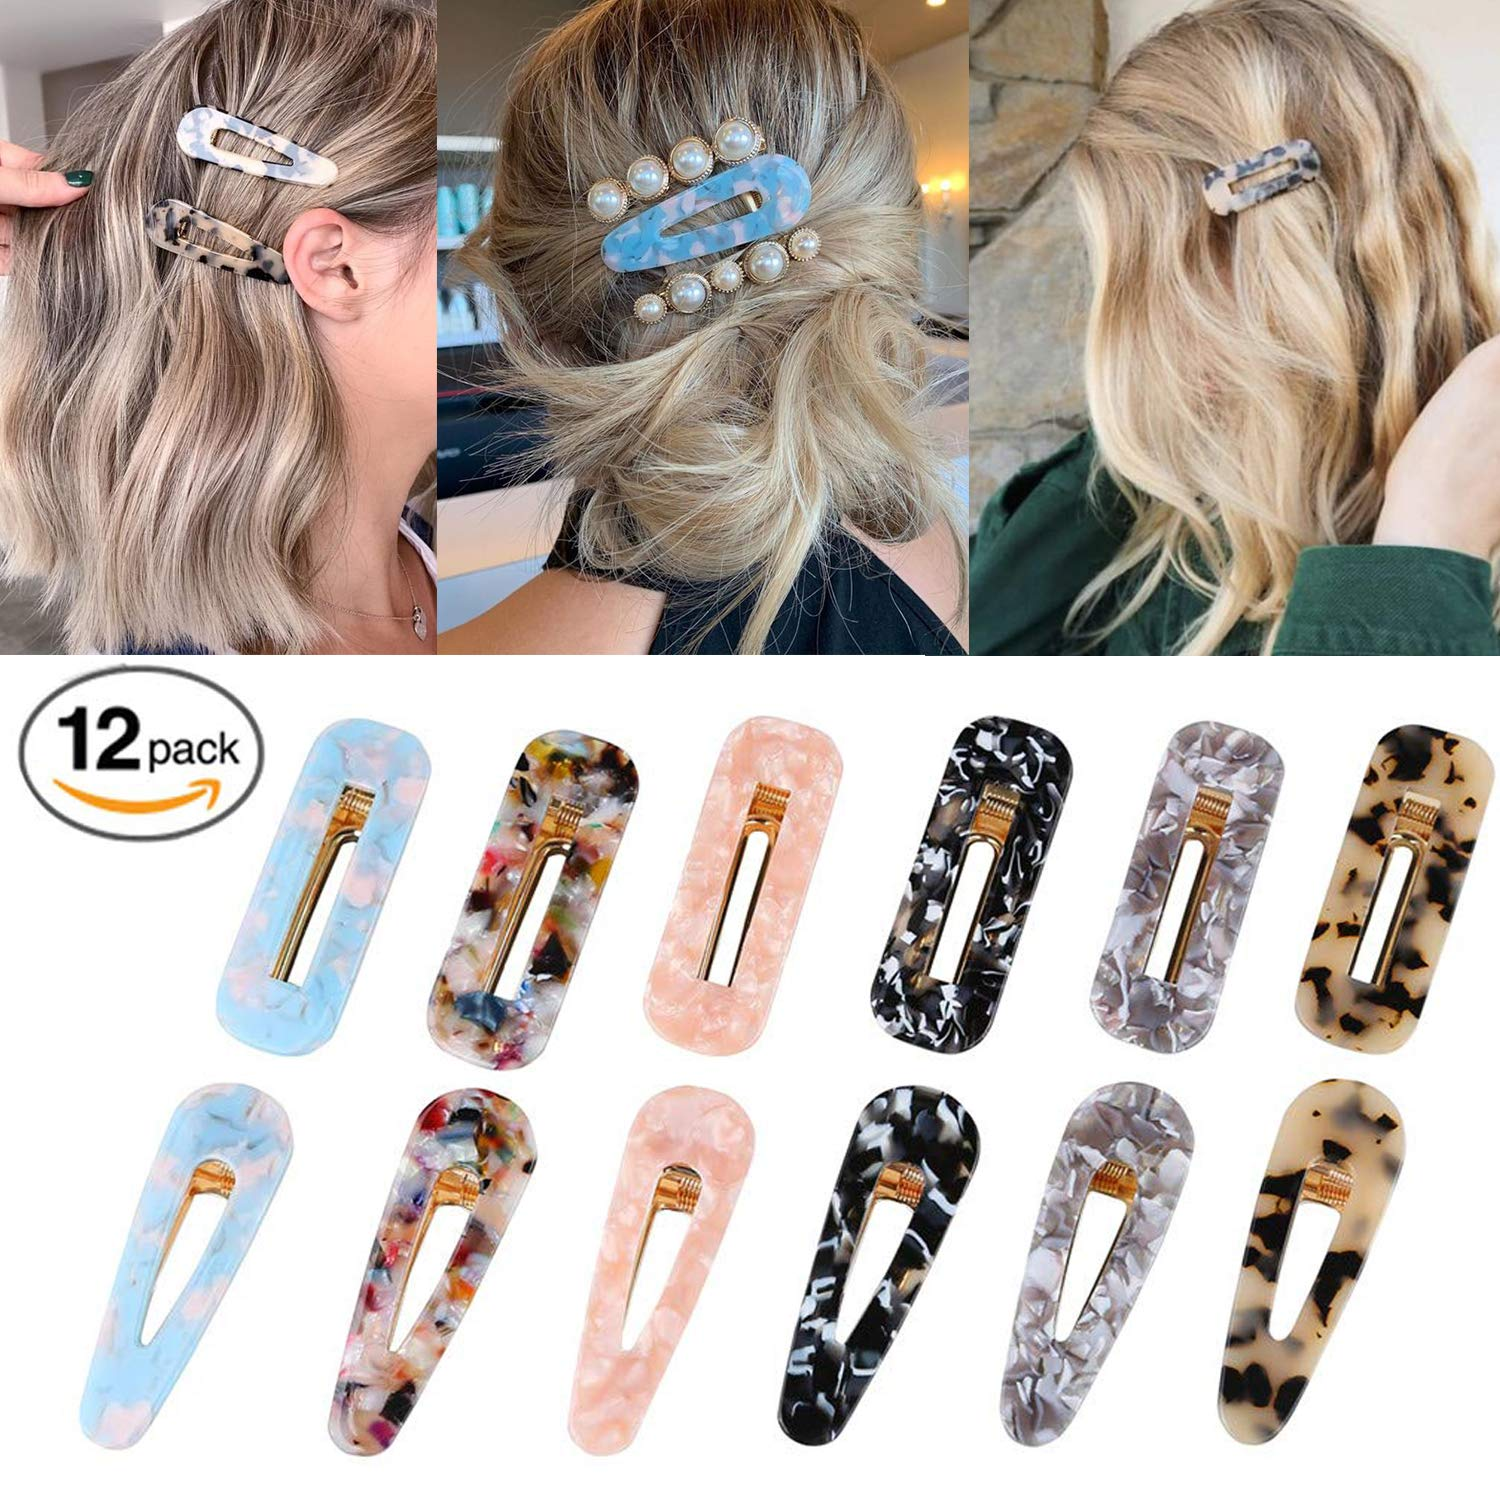 New Fashion Women Acid Acetic Acrylic Pin Barrette Clip Hairpin Hair Access //MY